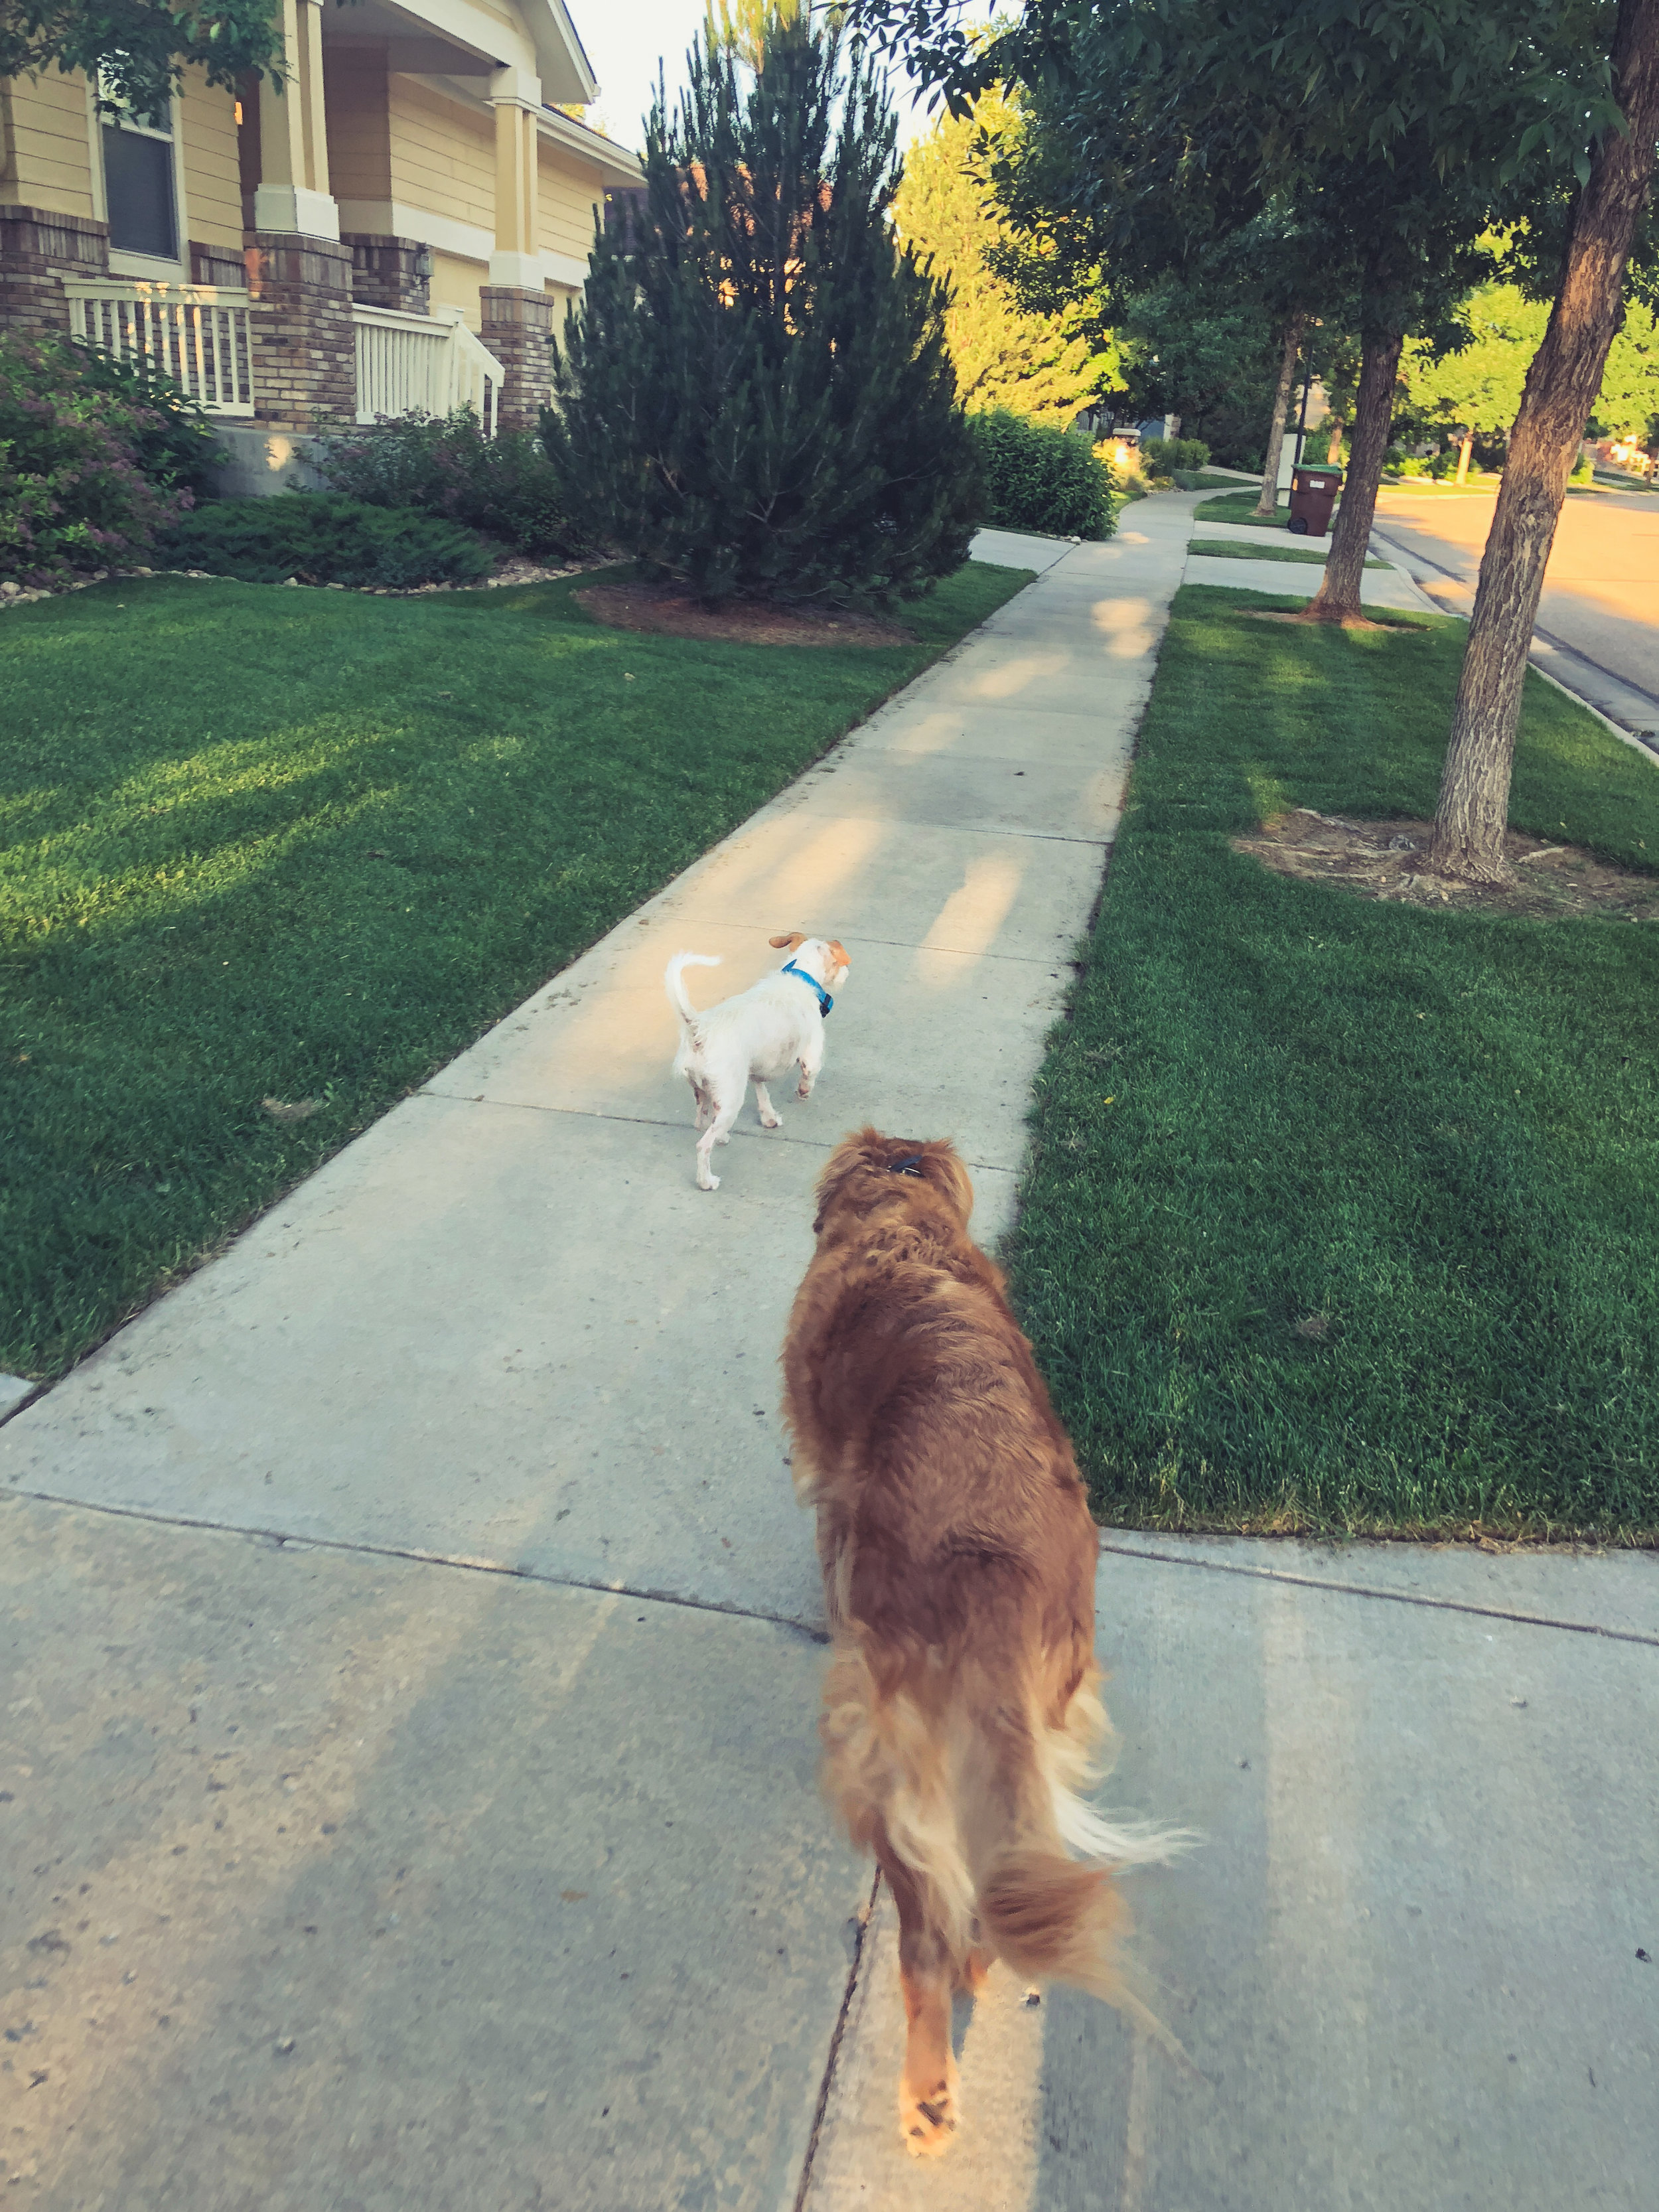 6:30AM - Walk the hounds. Take them around the neighborhood to clear rabbits and clean up edible debris.